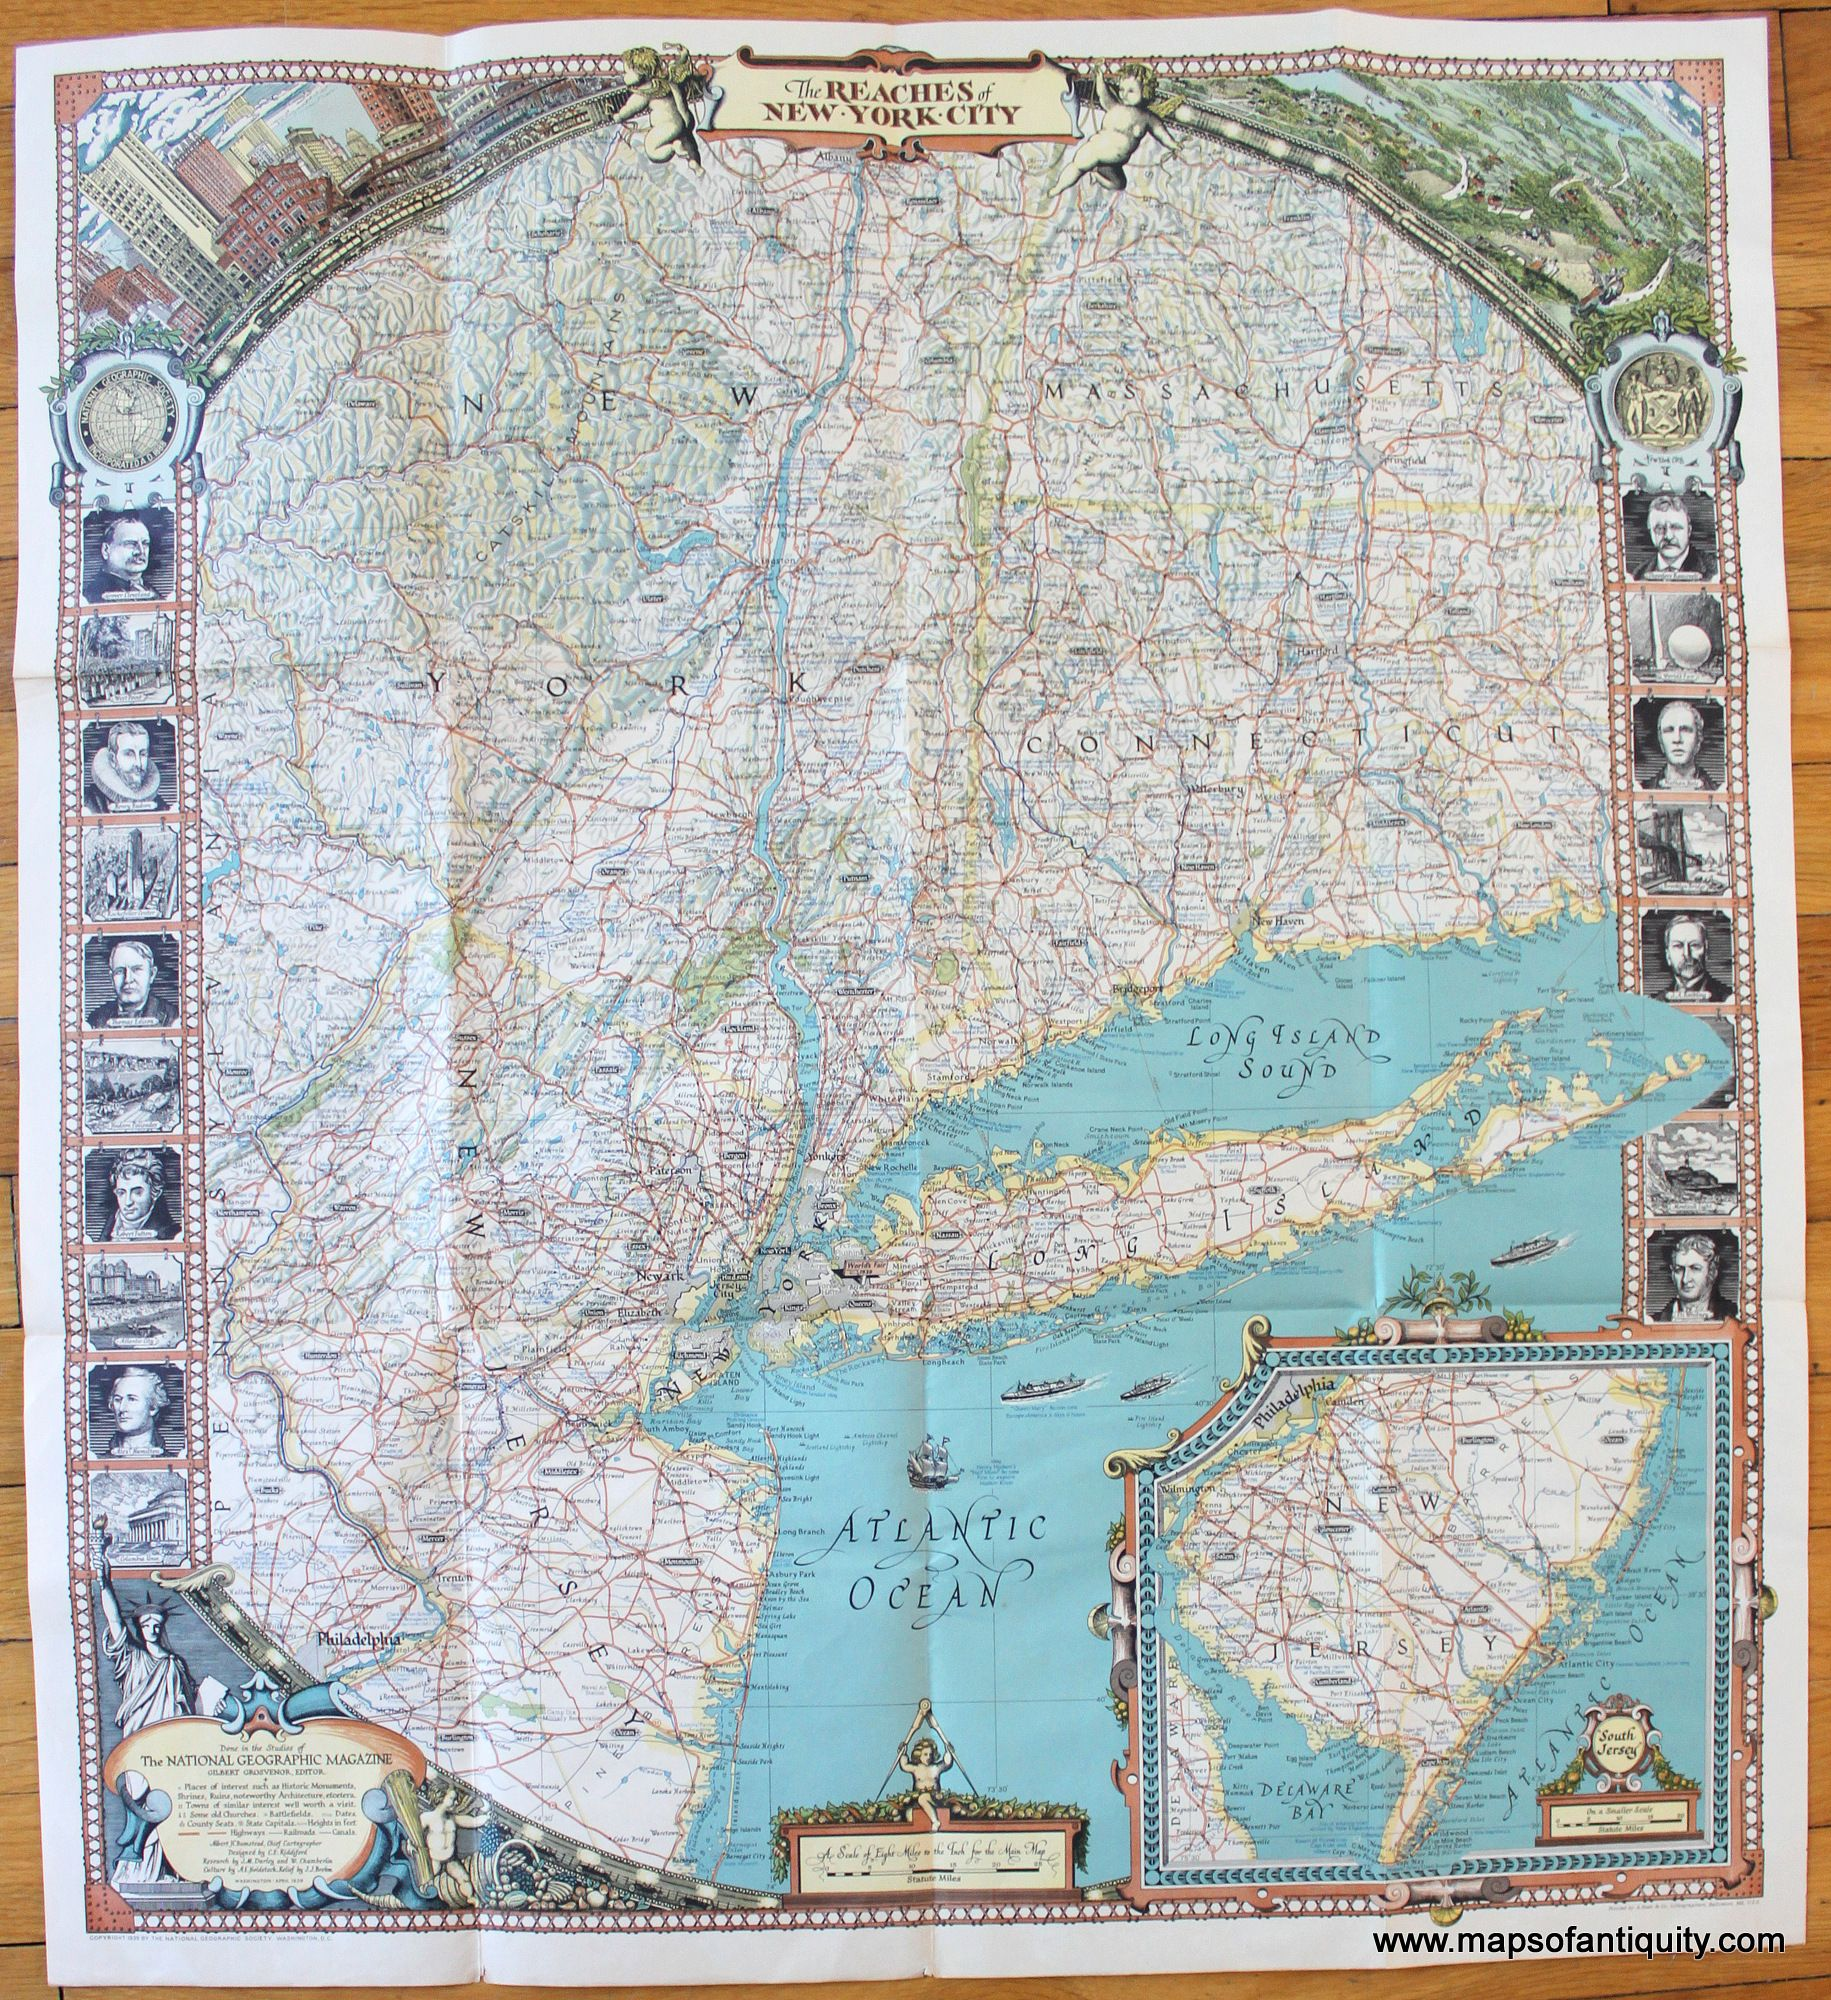 Antique 1939 Map Of The Reaches Of New York City By National Geographic Available In Our Shop And Via Our Website Map Of New York New York City Map National Geographic Maps